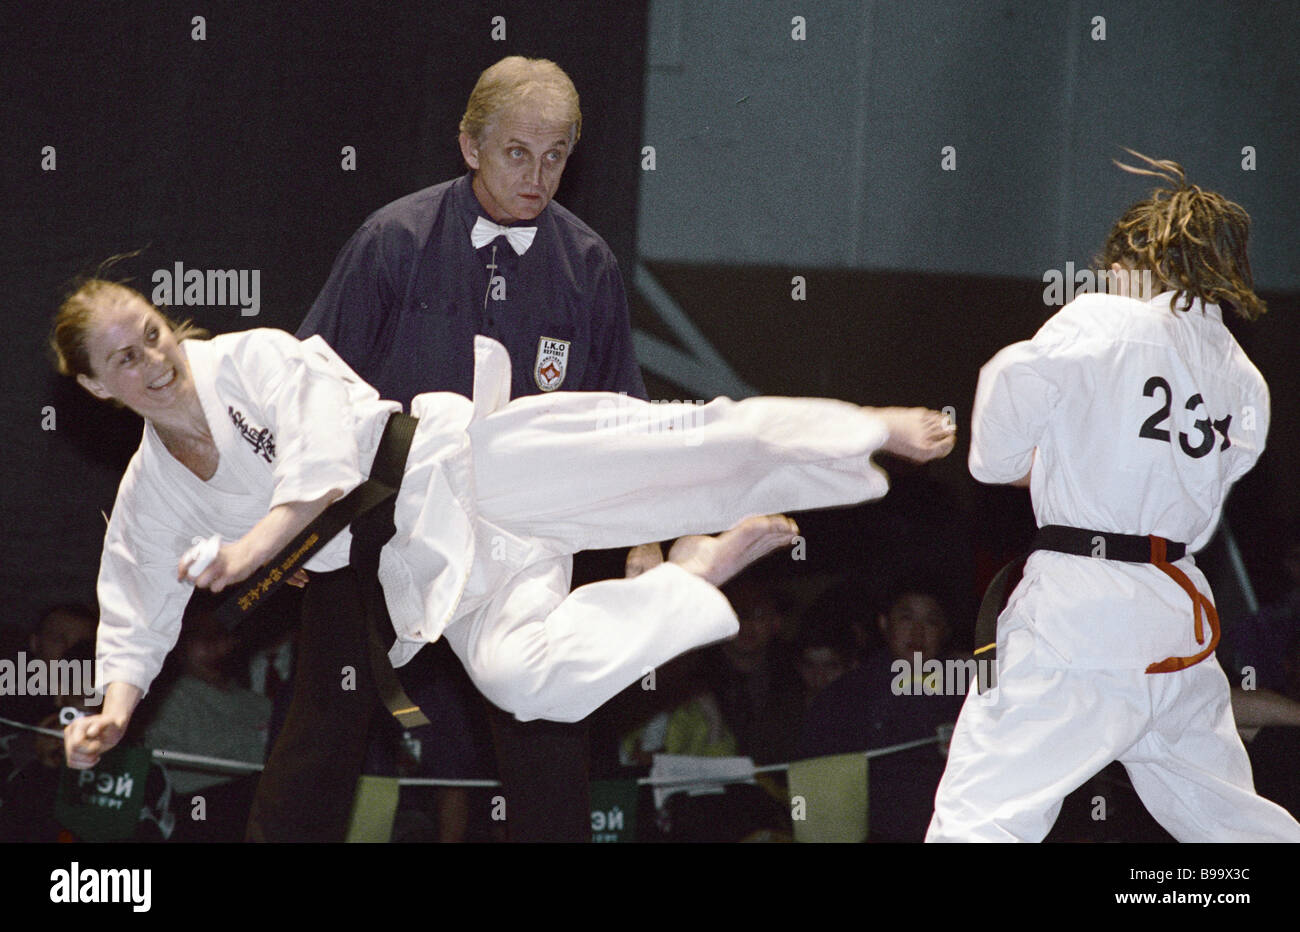 A bout of the 3rd International Kiokusinkai karate tournament Russian Open Cup 2002 - Stock Image